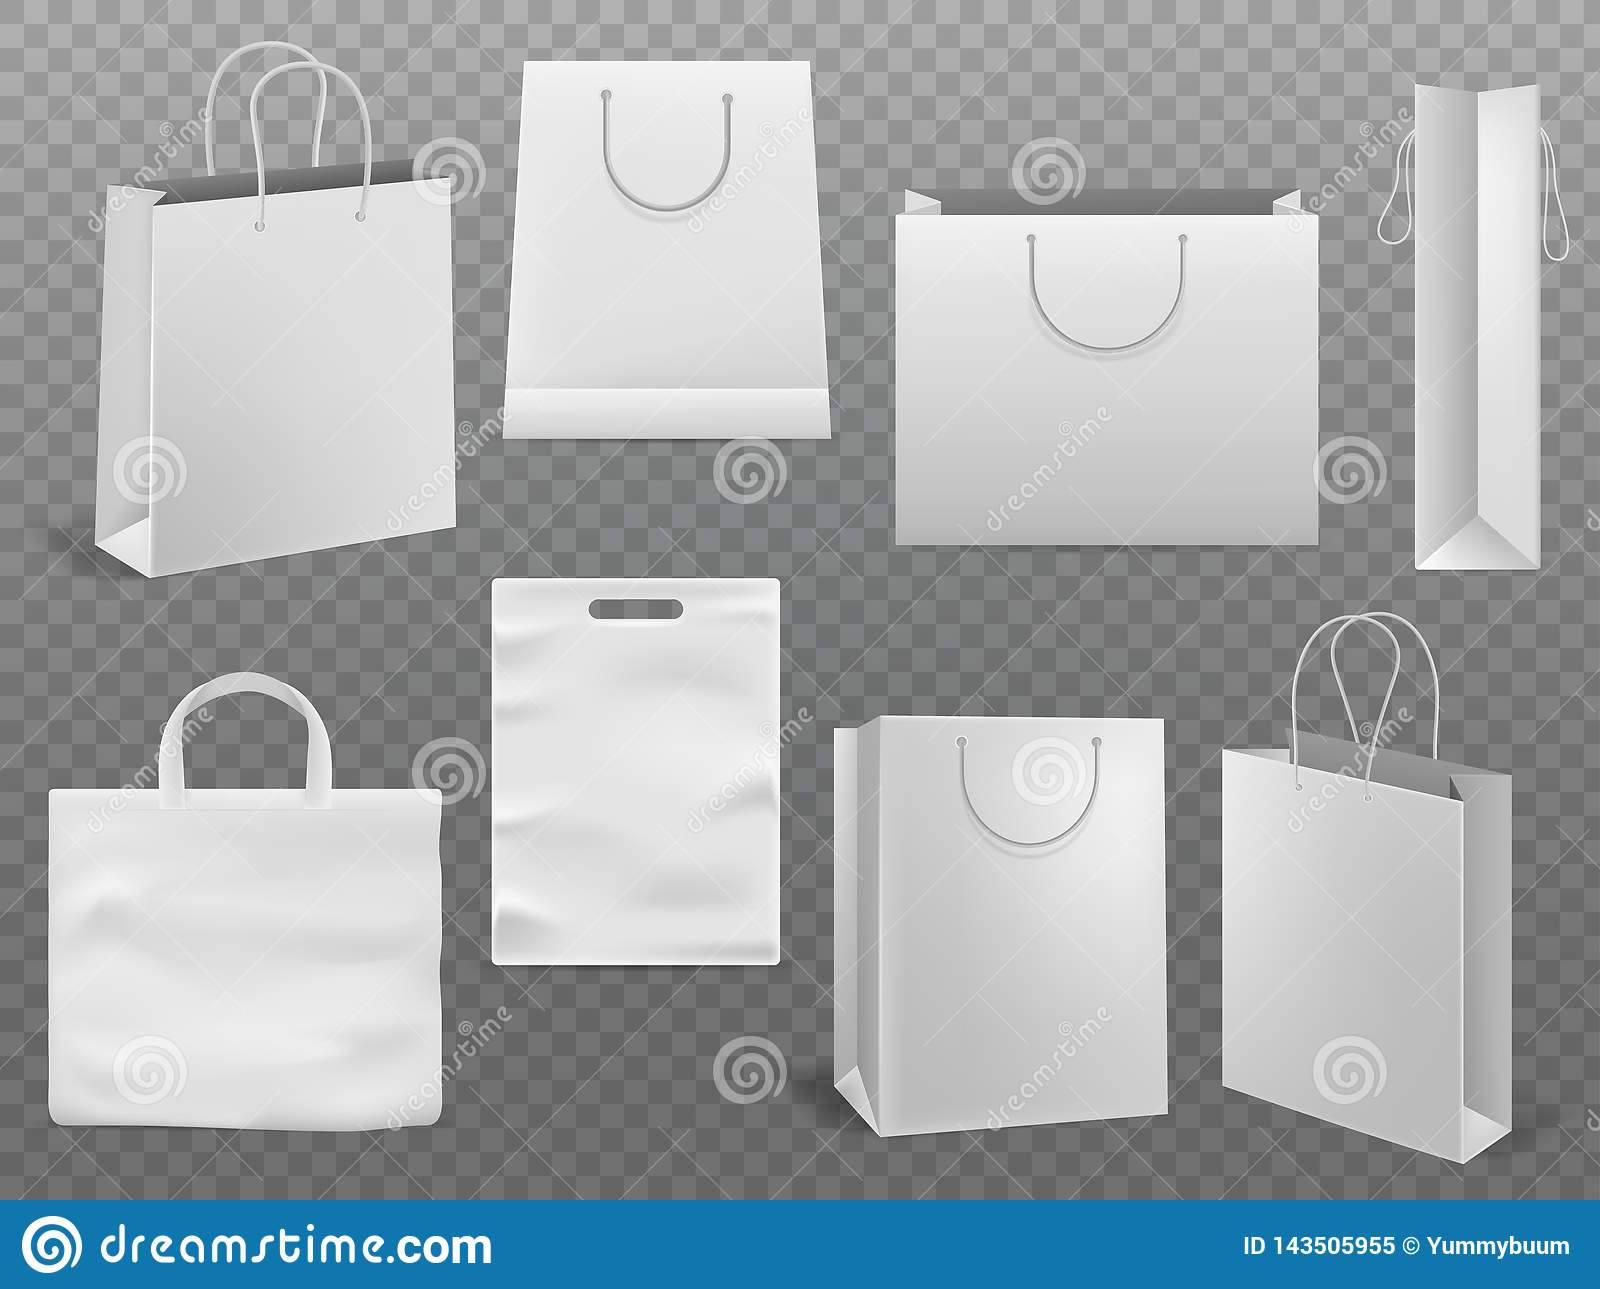 shopping product package for corporate brand template. Shopping Bag Mockups Empty Handbag White Paper Fashion Bag With Handle Vector 3d Isolated Template Stock Vector Illustration Of Bagful Merchandise 143505955